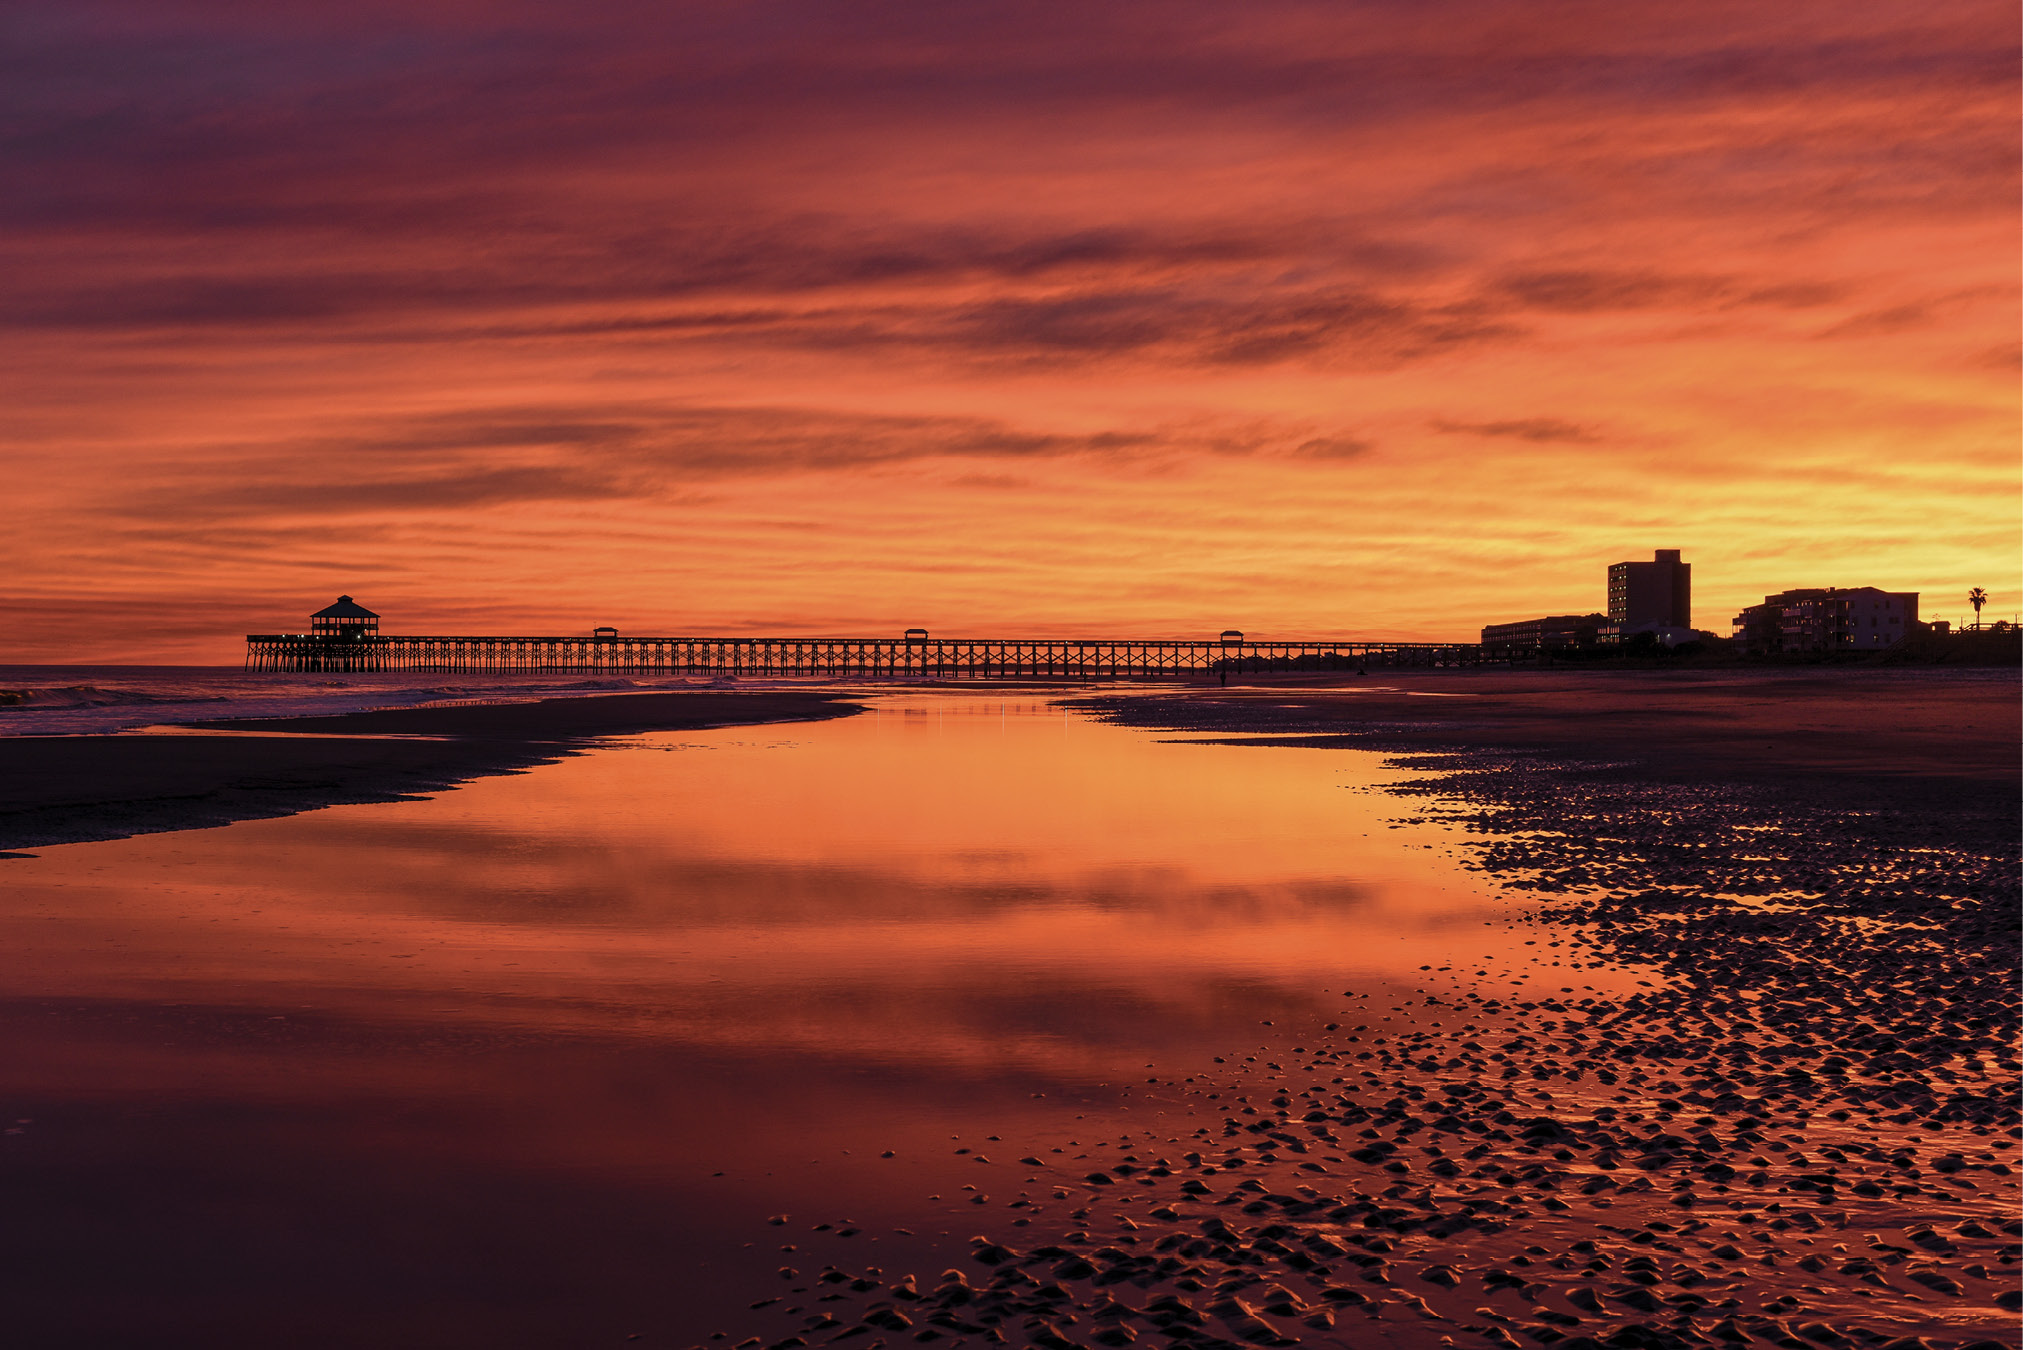 A dramatic sunset at low tide